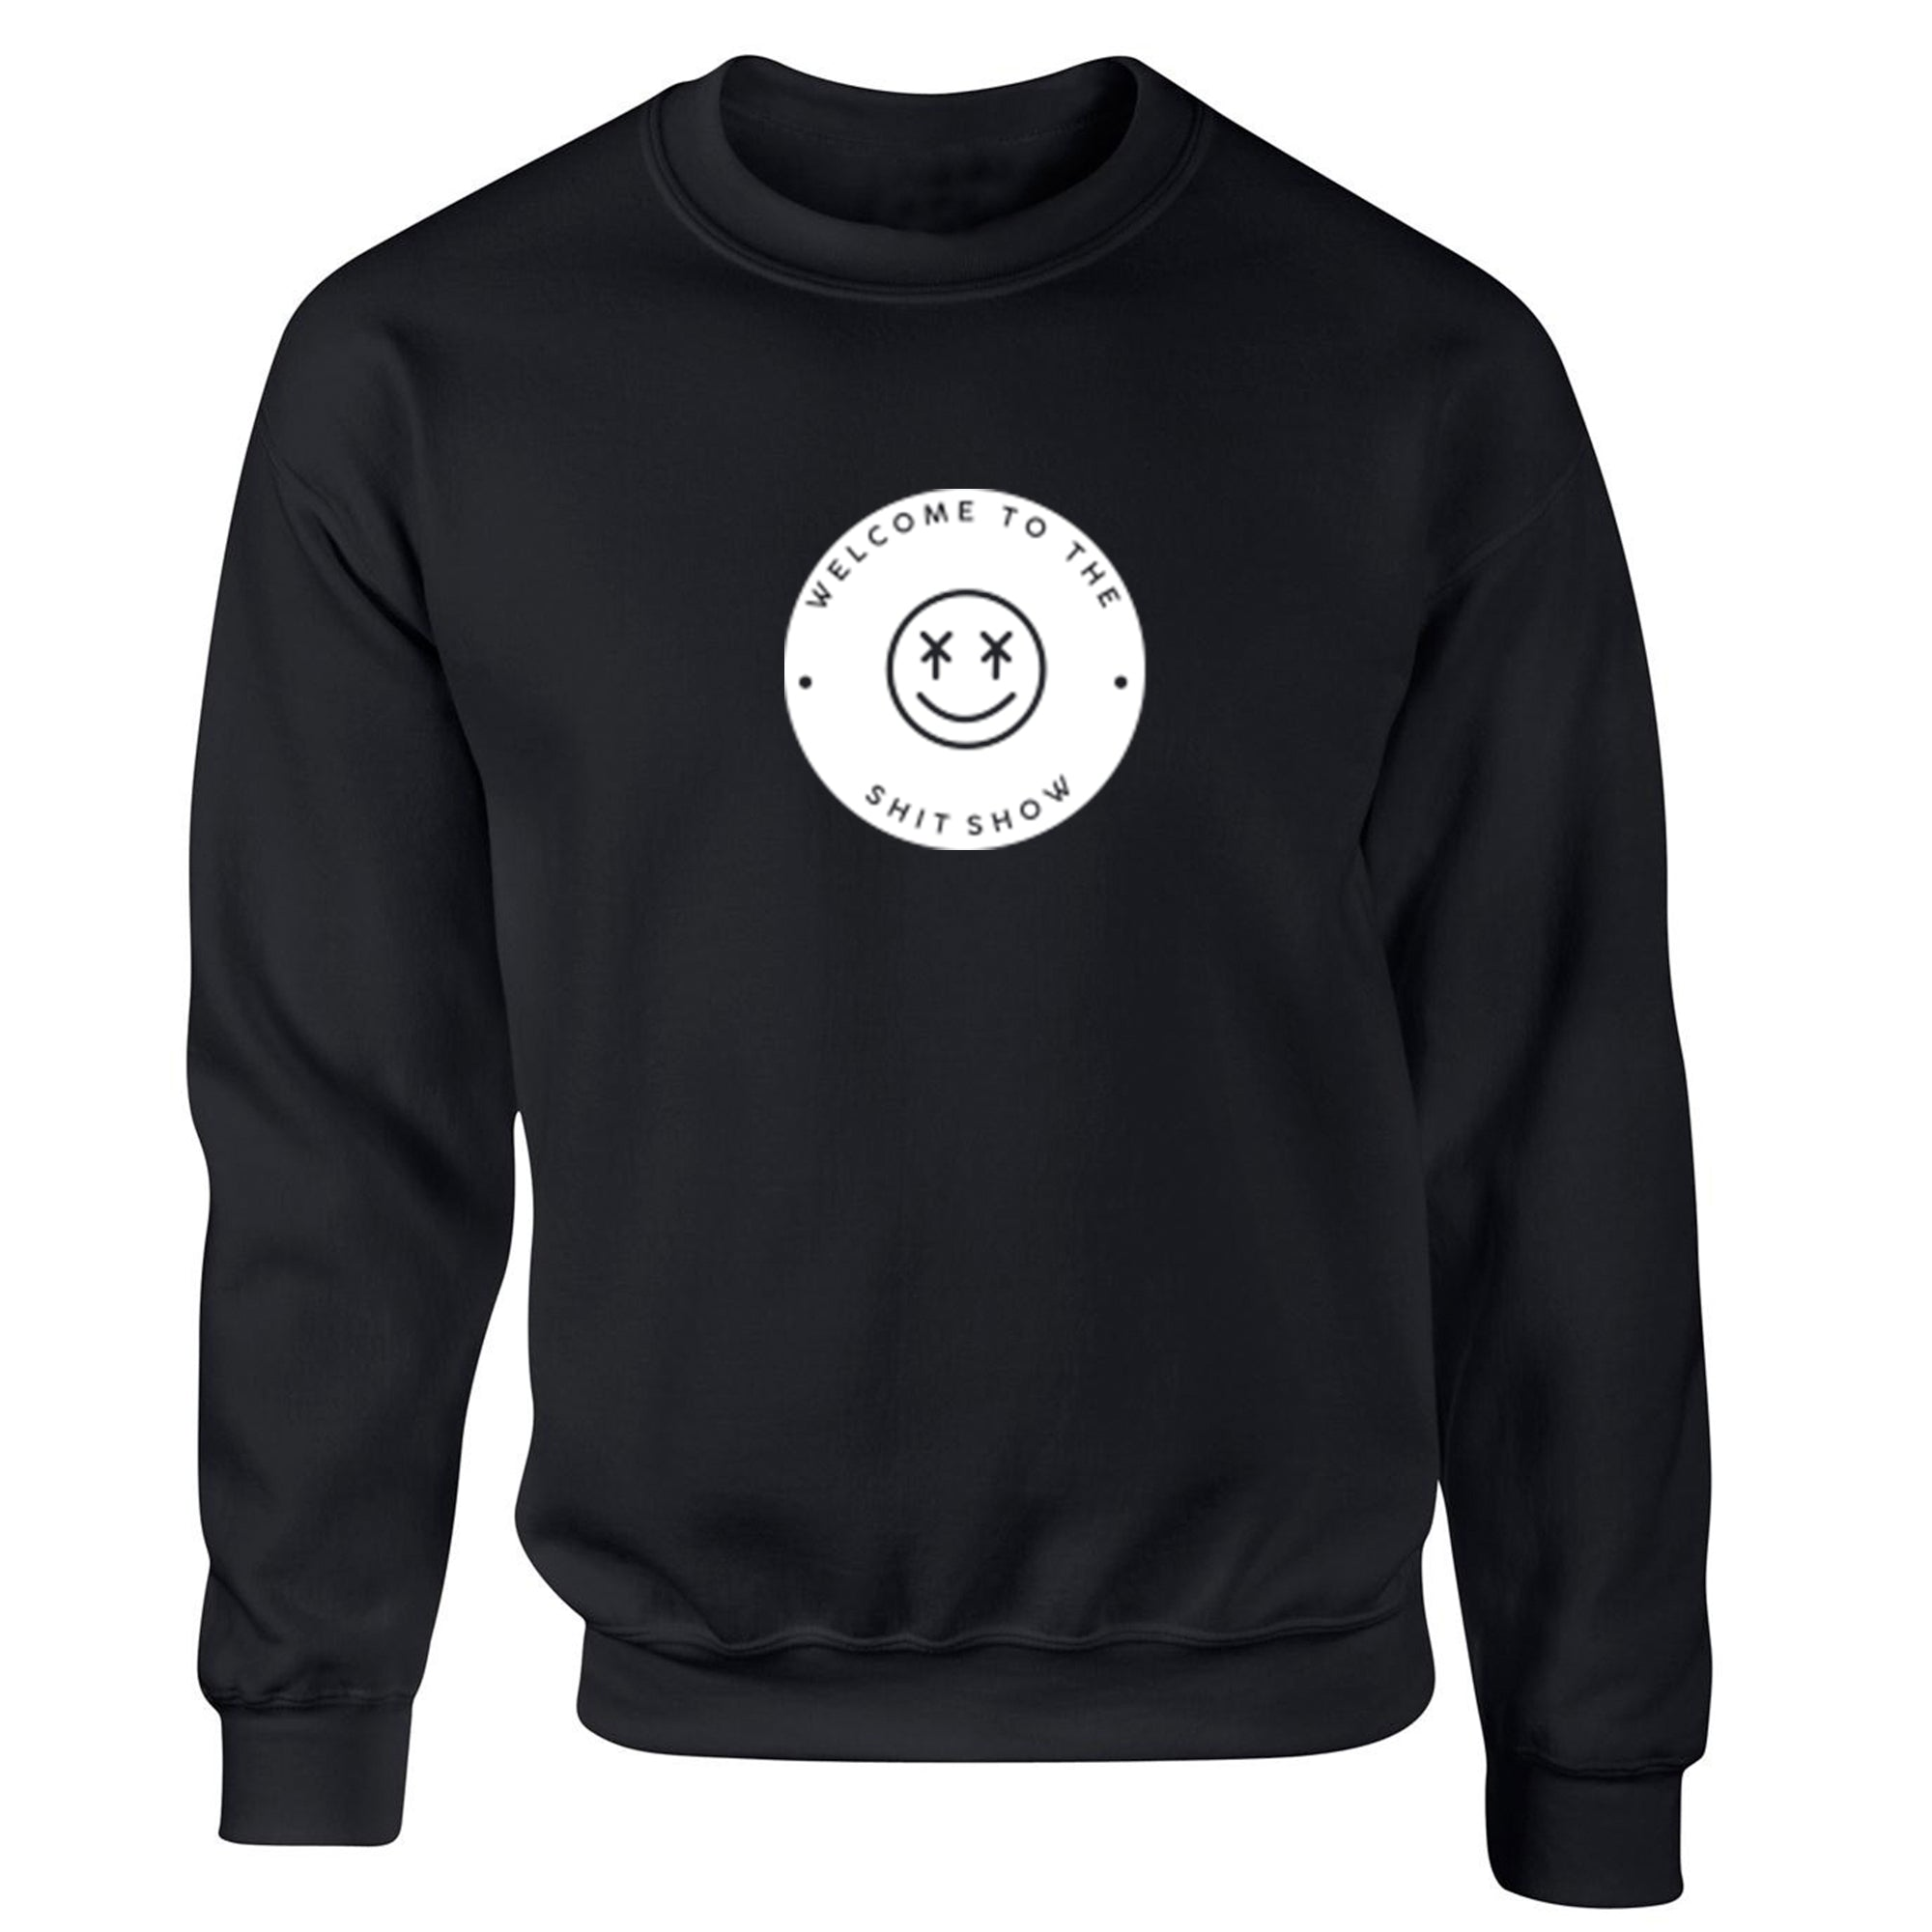 Welcome To The Shit Show Unisex Jumper S1136 - Illustrated Identity Ltd.